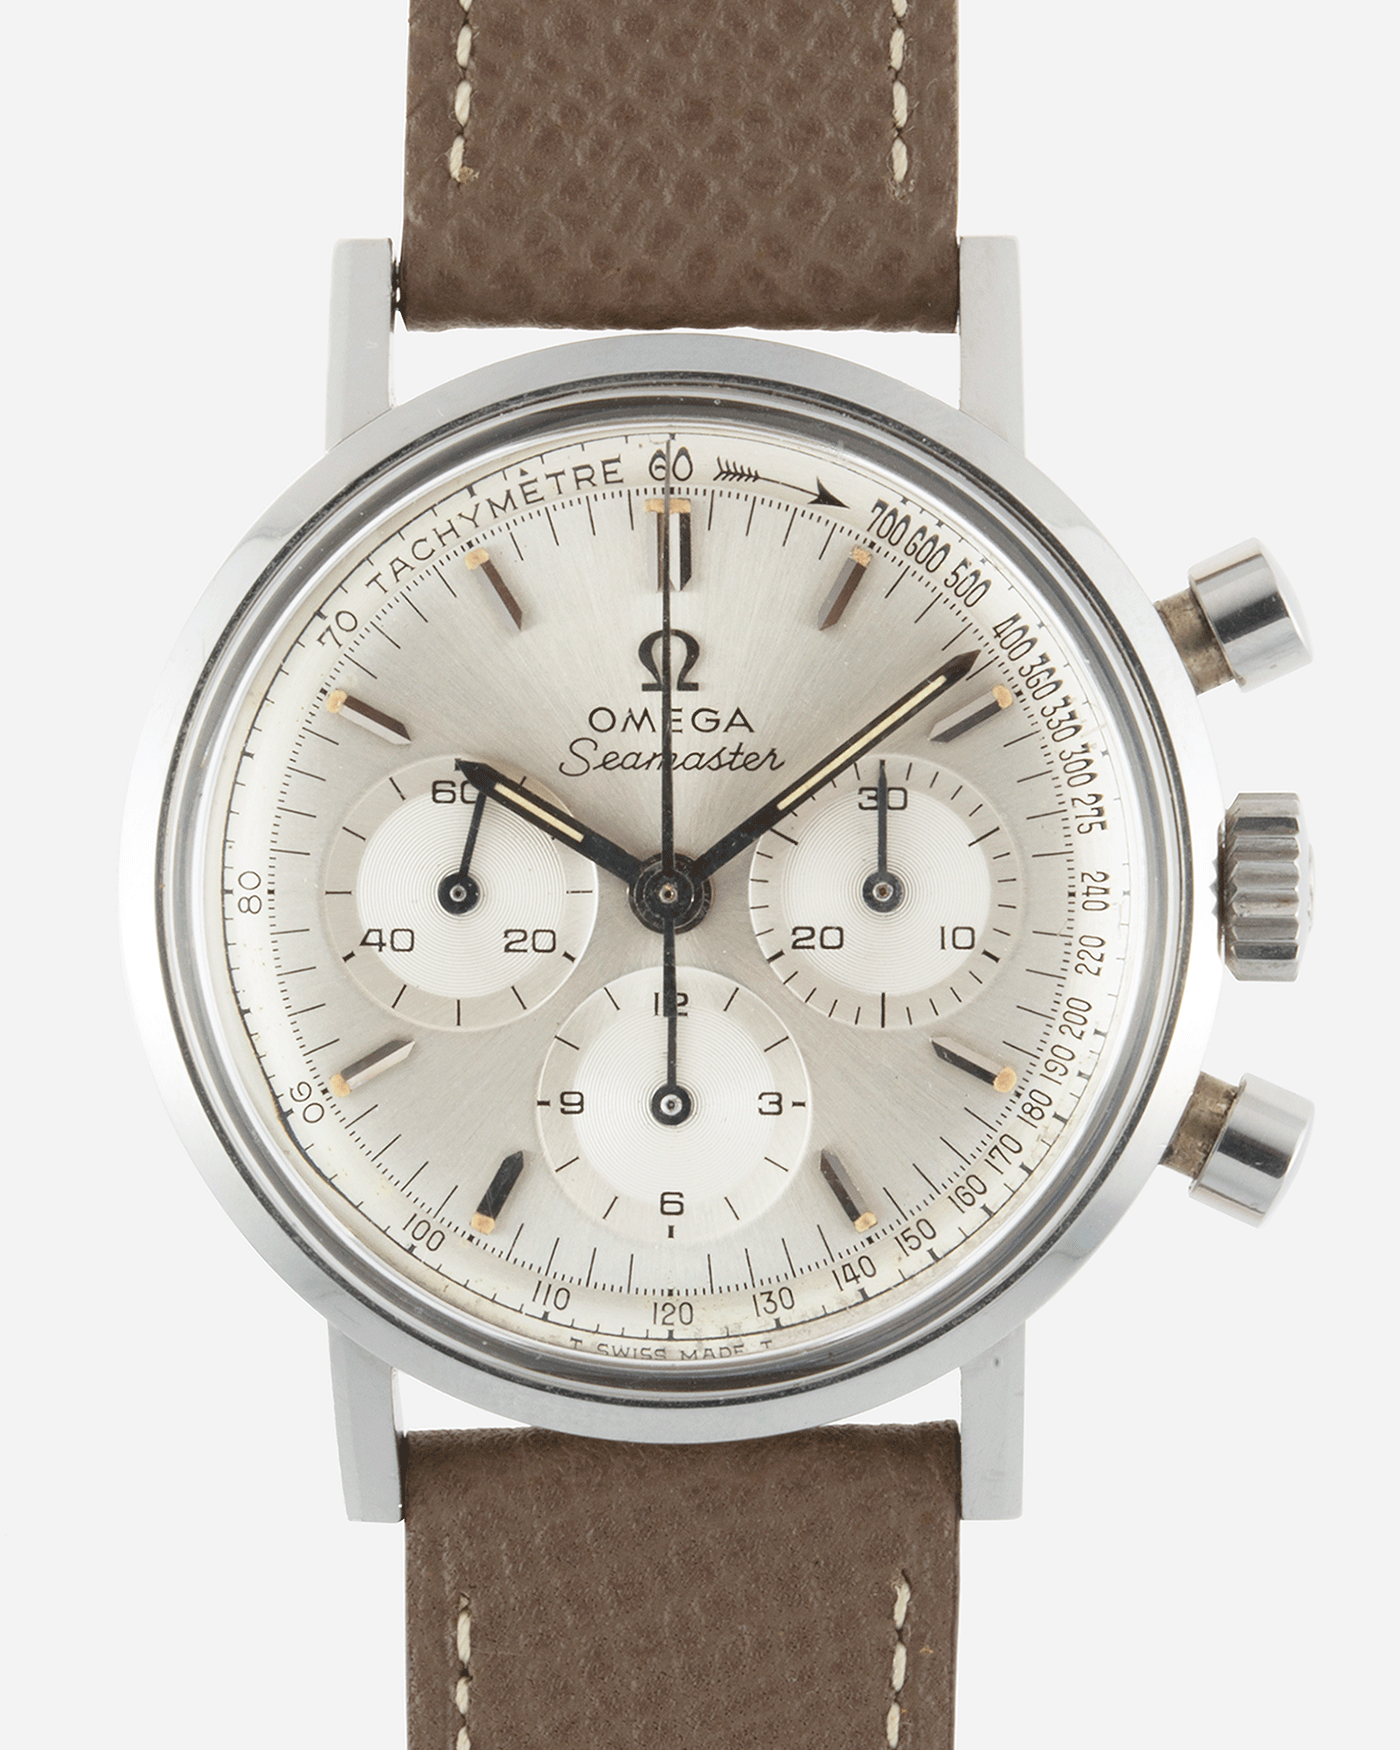 Omega Seamaster 321 Chronograph 145.005-67 Vintage Dive Watch | S.Song Vintage Watches For Sale